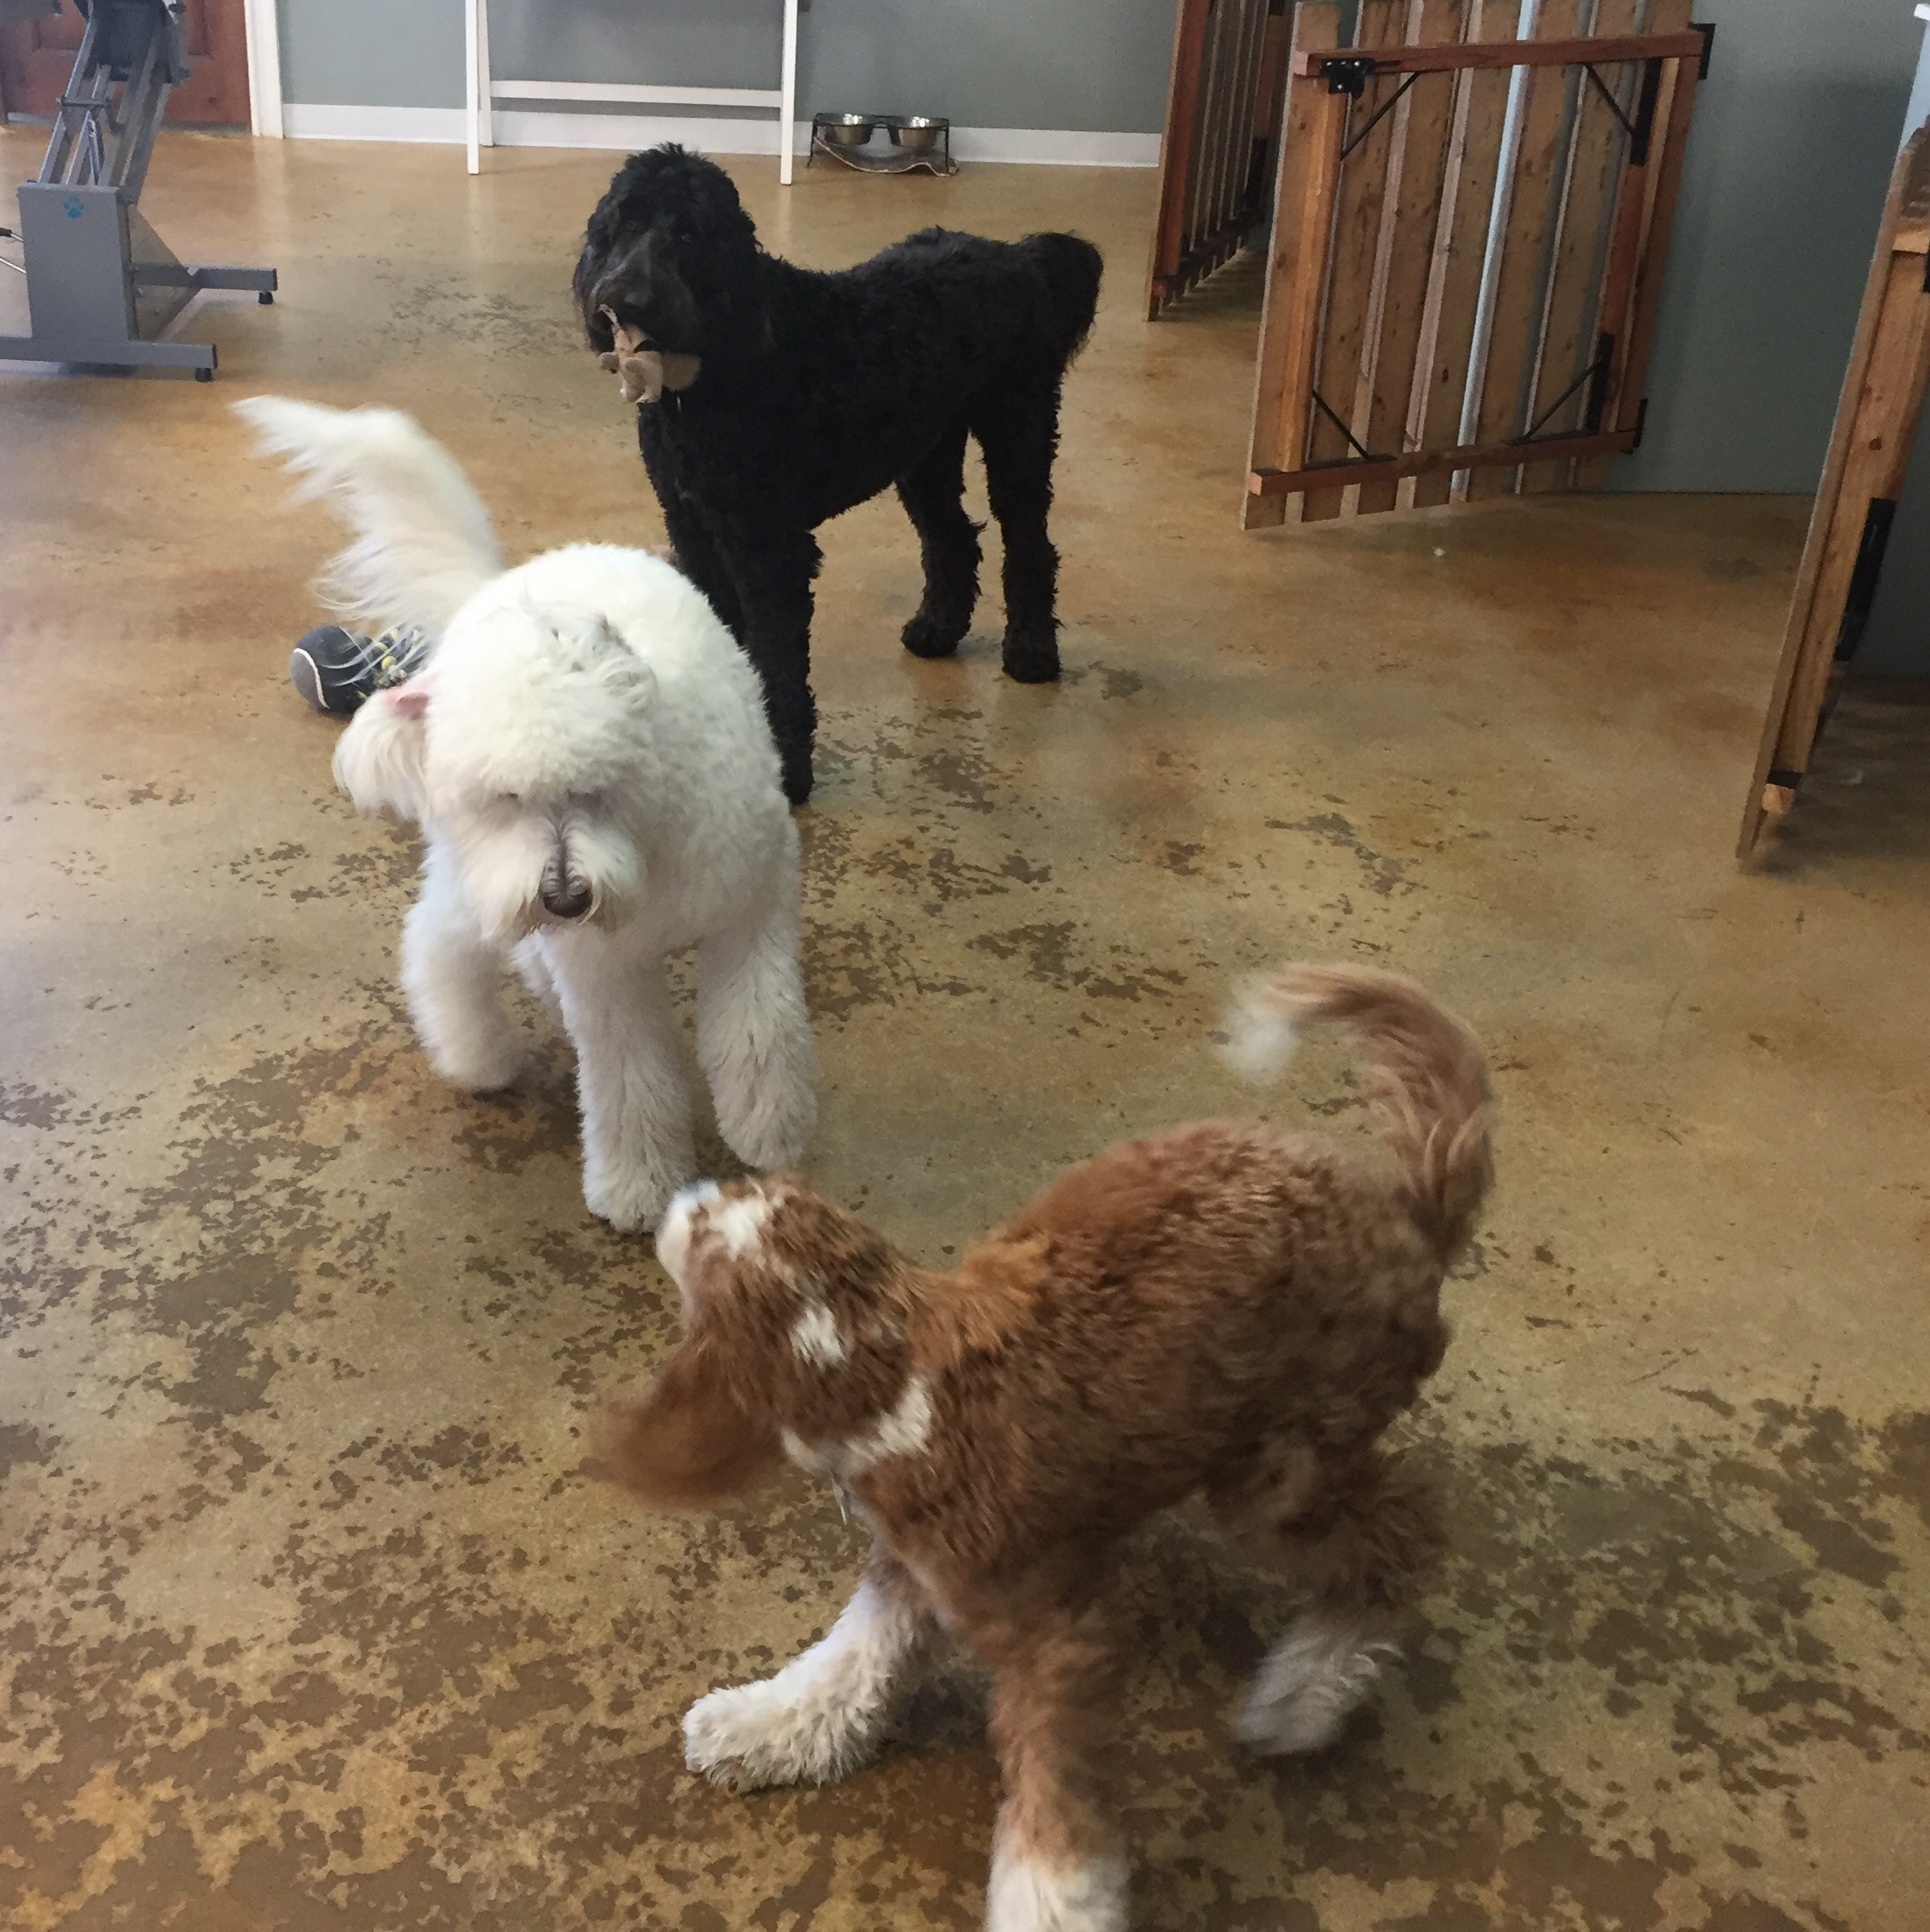 Bernie circles around another Doodle gearing up to play at doggie daycare at Poodles and Pals in Tucson, Arizona.